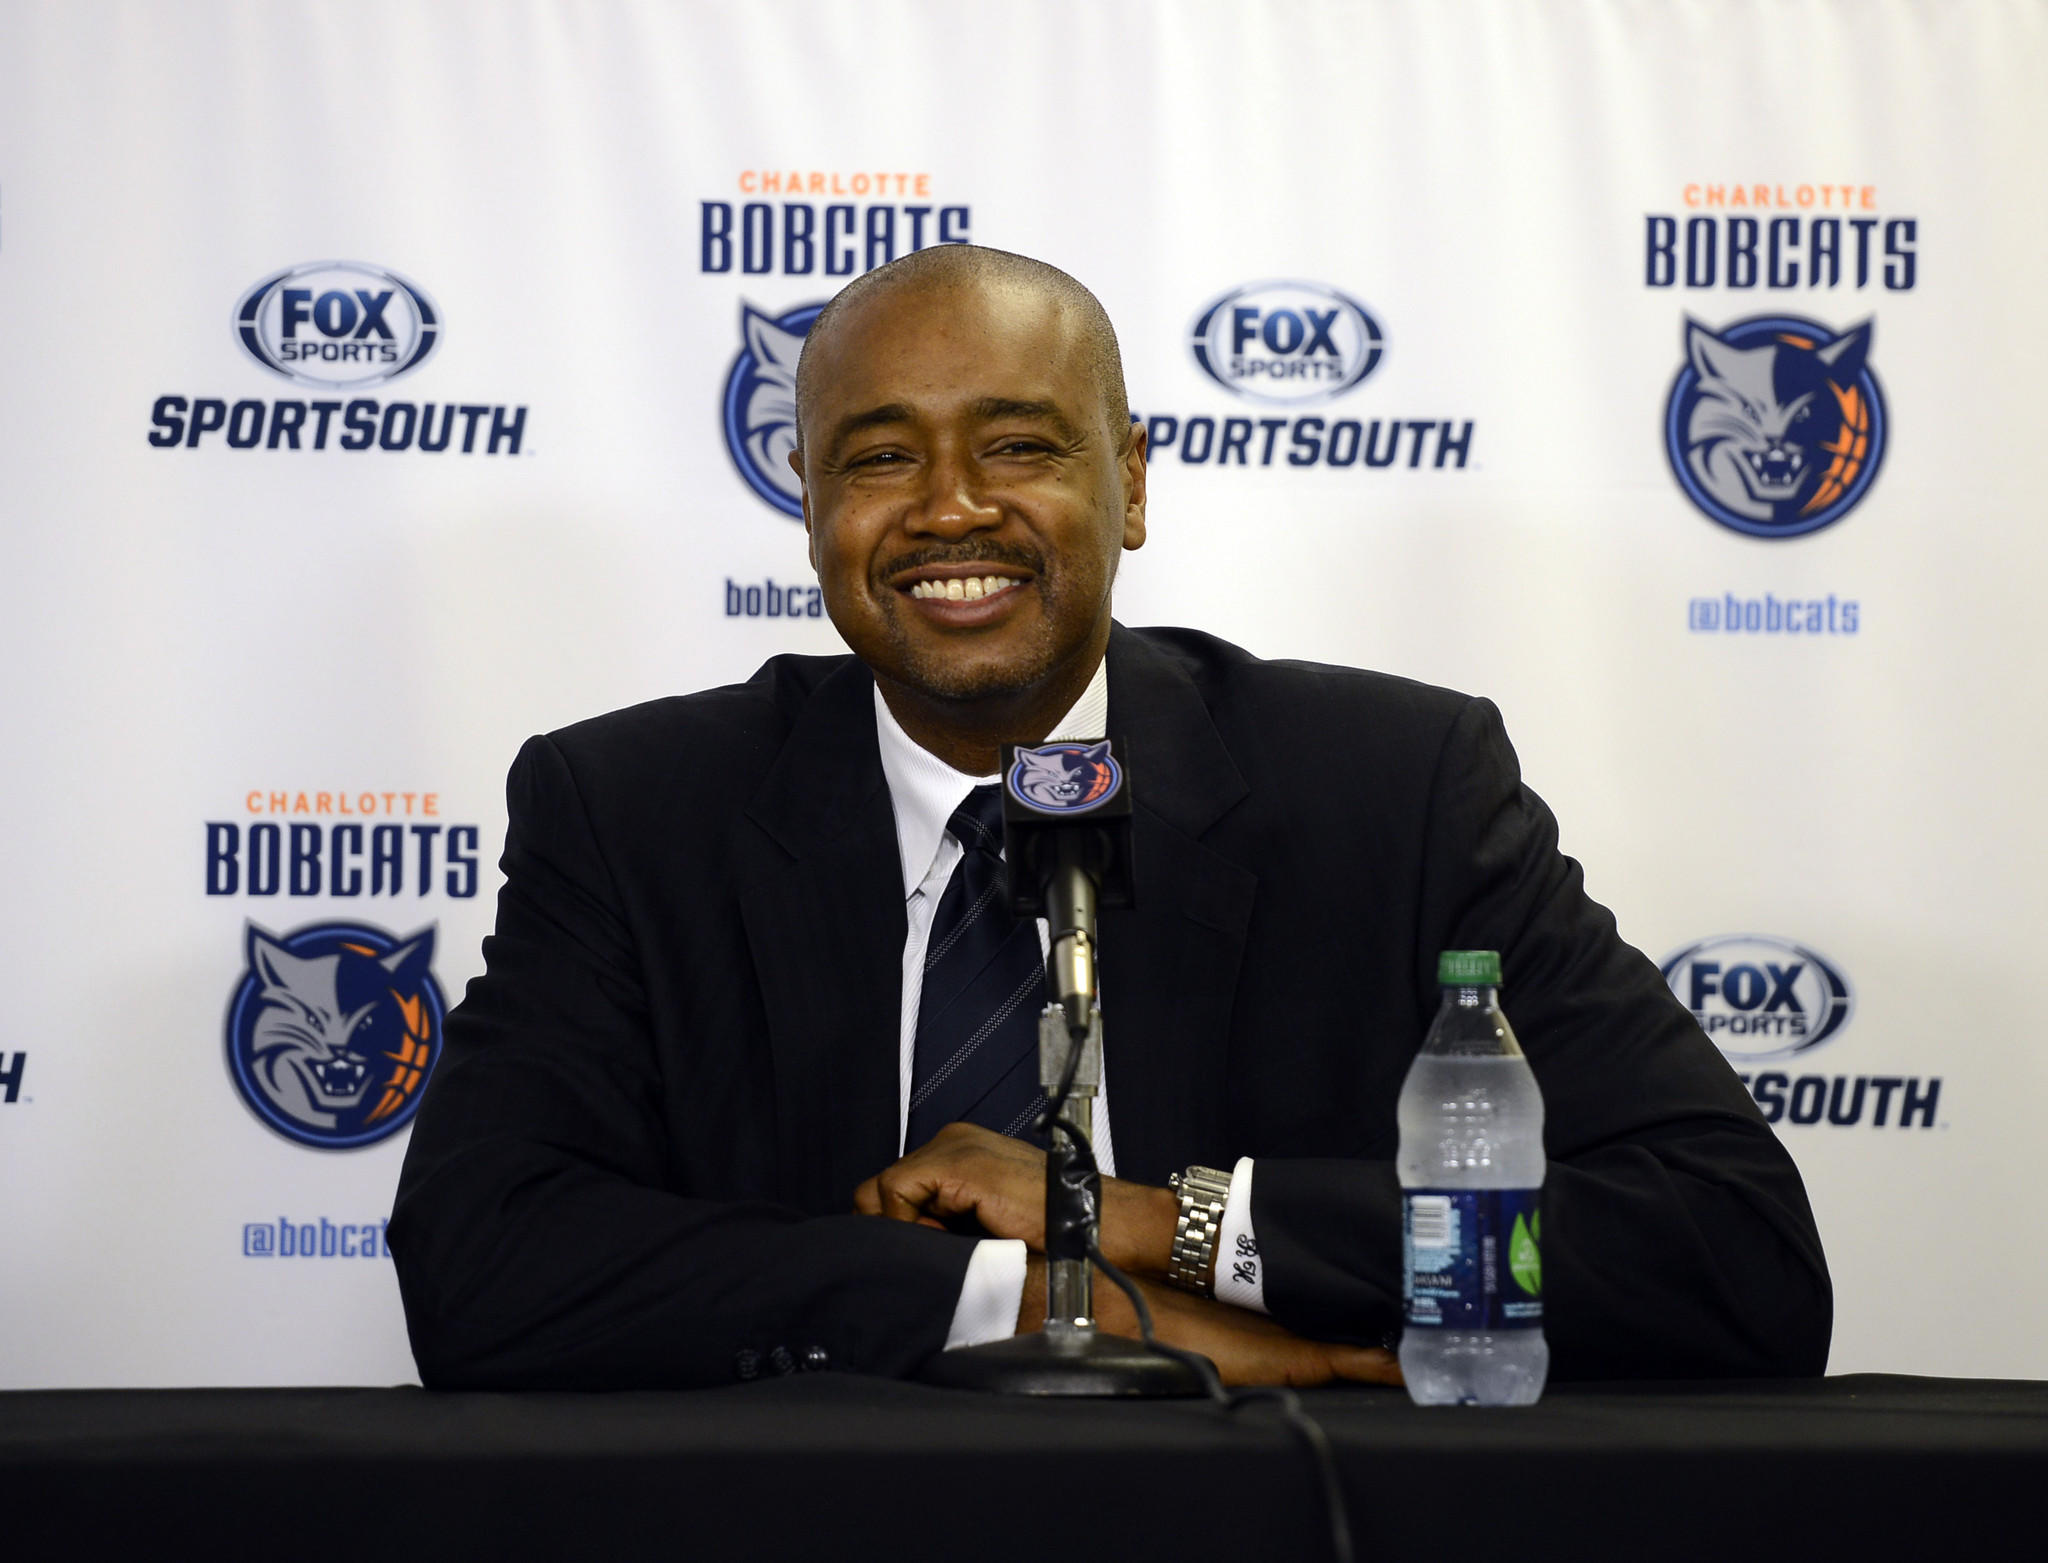 Bobcats president of basketball operations Rod Higgins during a press conference in 2013.